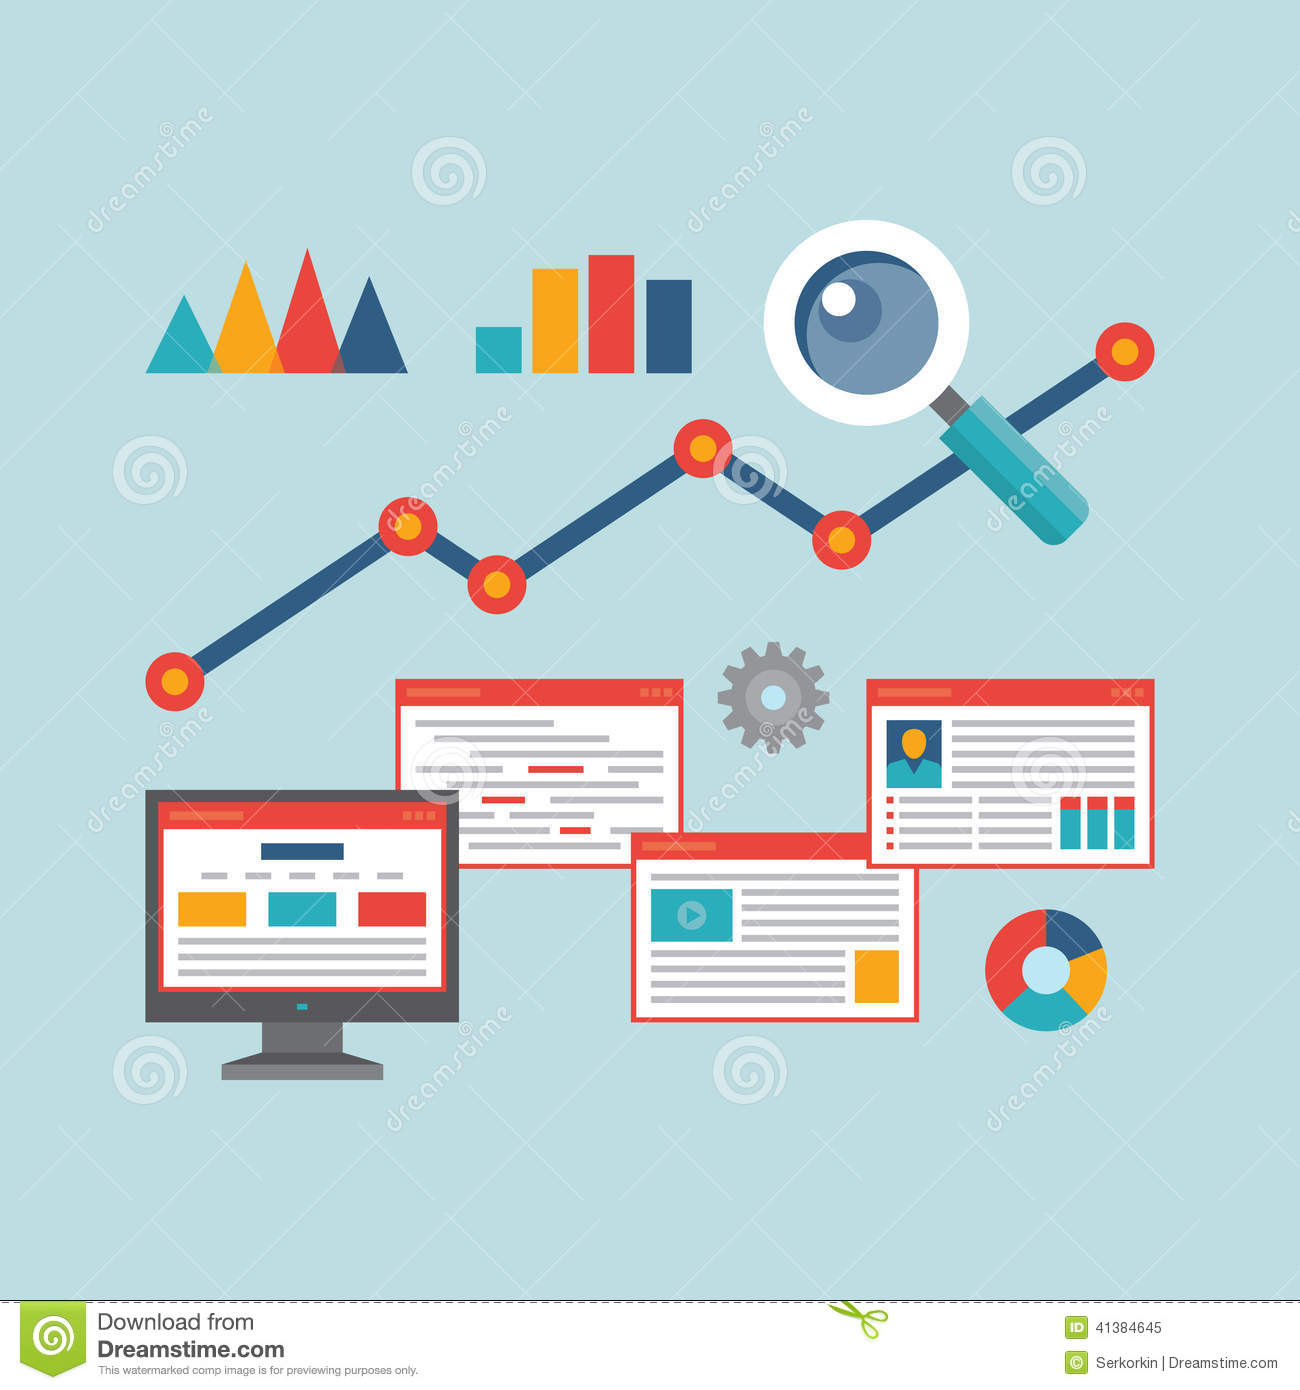 web data analysis Start with web analytics we bring our best even to the basics use award-winning tools to turn vast streams of web data into insights that everyone can act on.